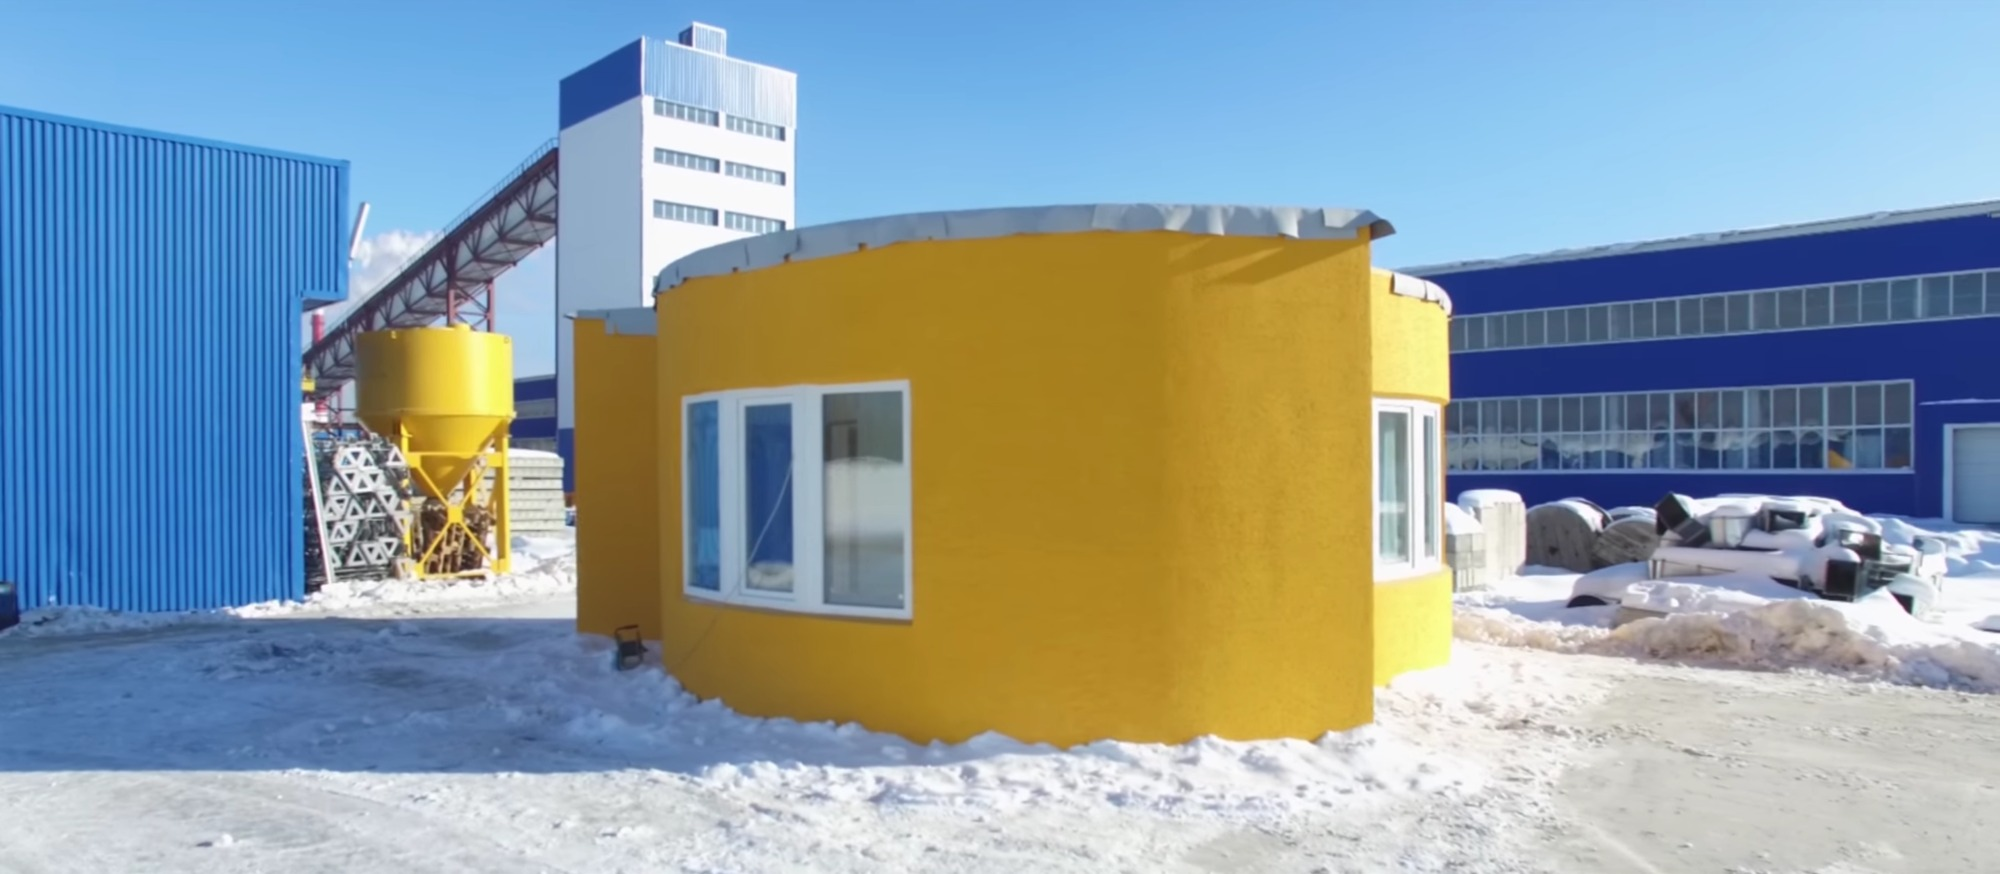 Build your own 3d printed house all in one day archdaily for Build a 3d house online